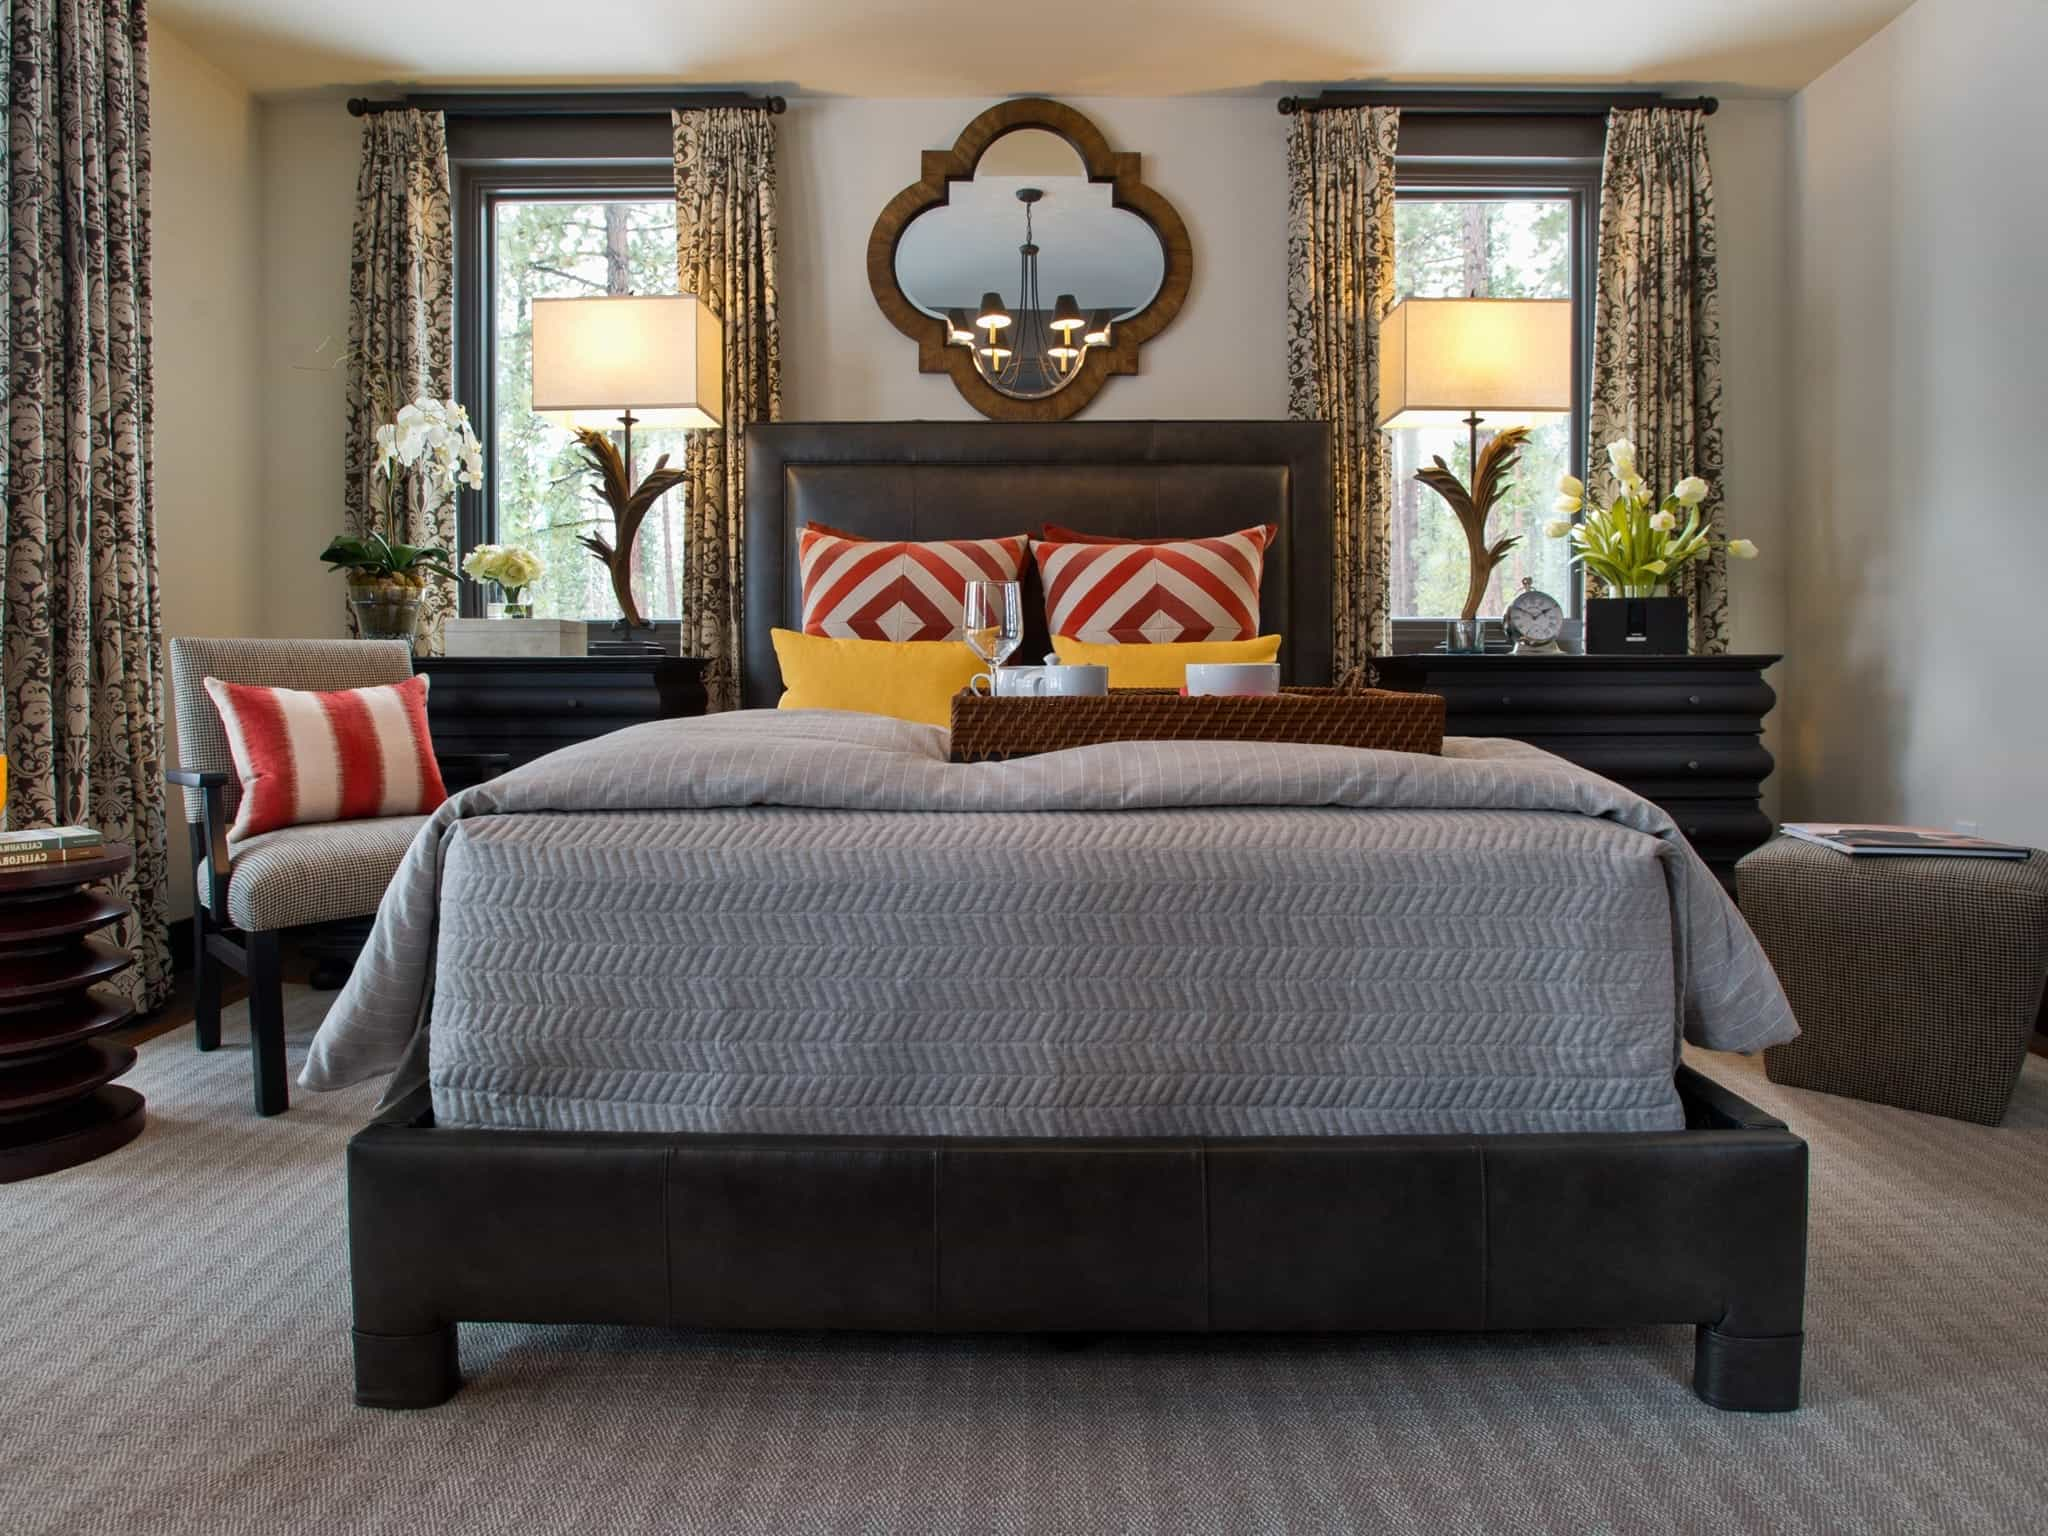 Low Buget Master Bedroom Decor With Gray Bedding And Vibrant Pillows (Image 12 of 16)